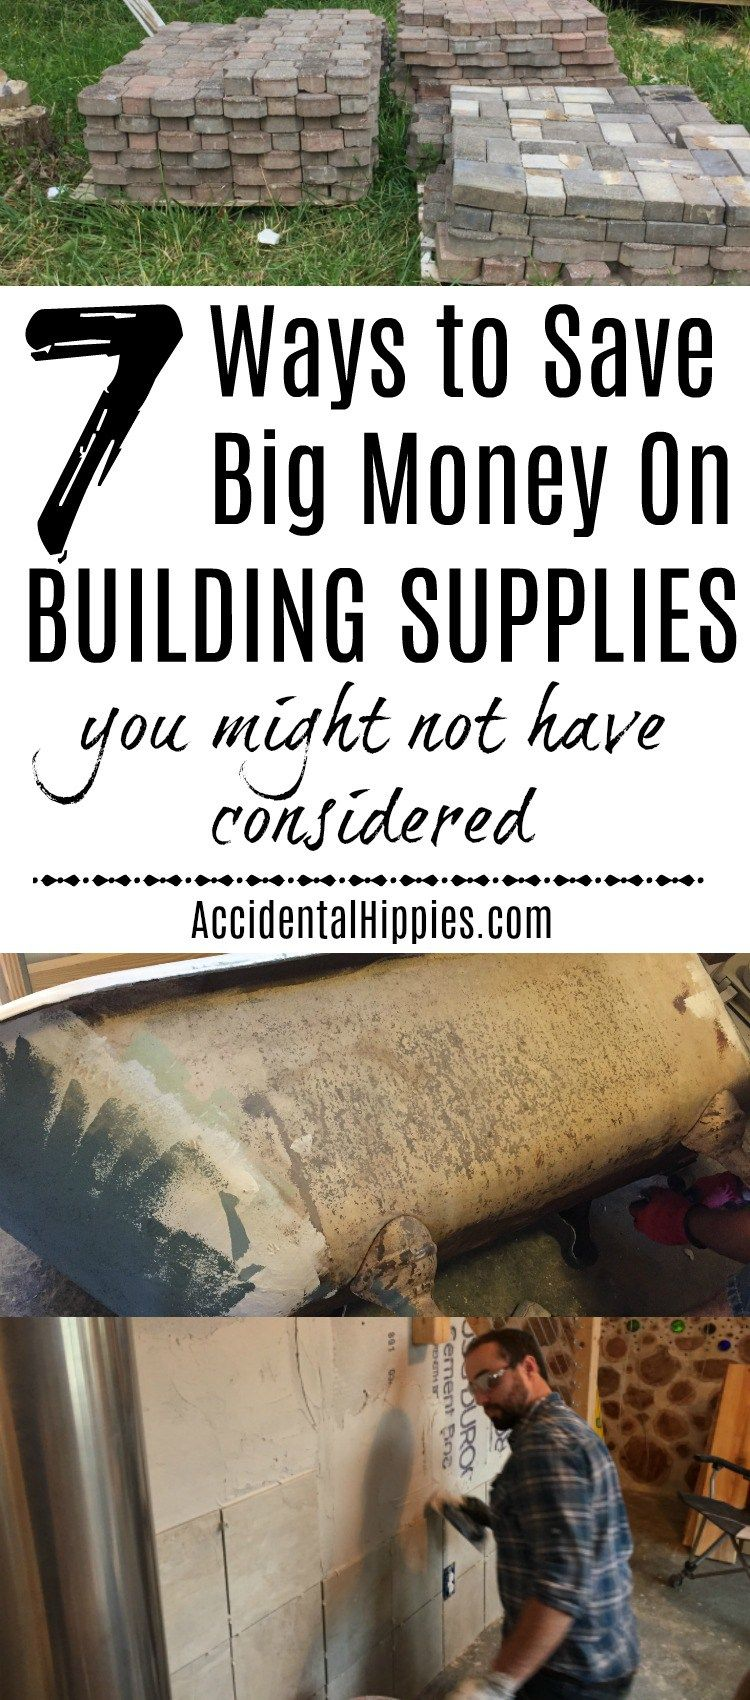 7 More Awesome Ways To Save Money On Building Supplies Home Building Tips Home Repairs Build Your Own House